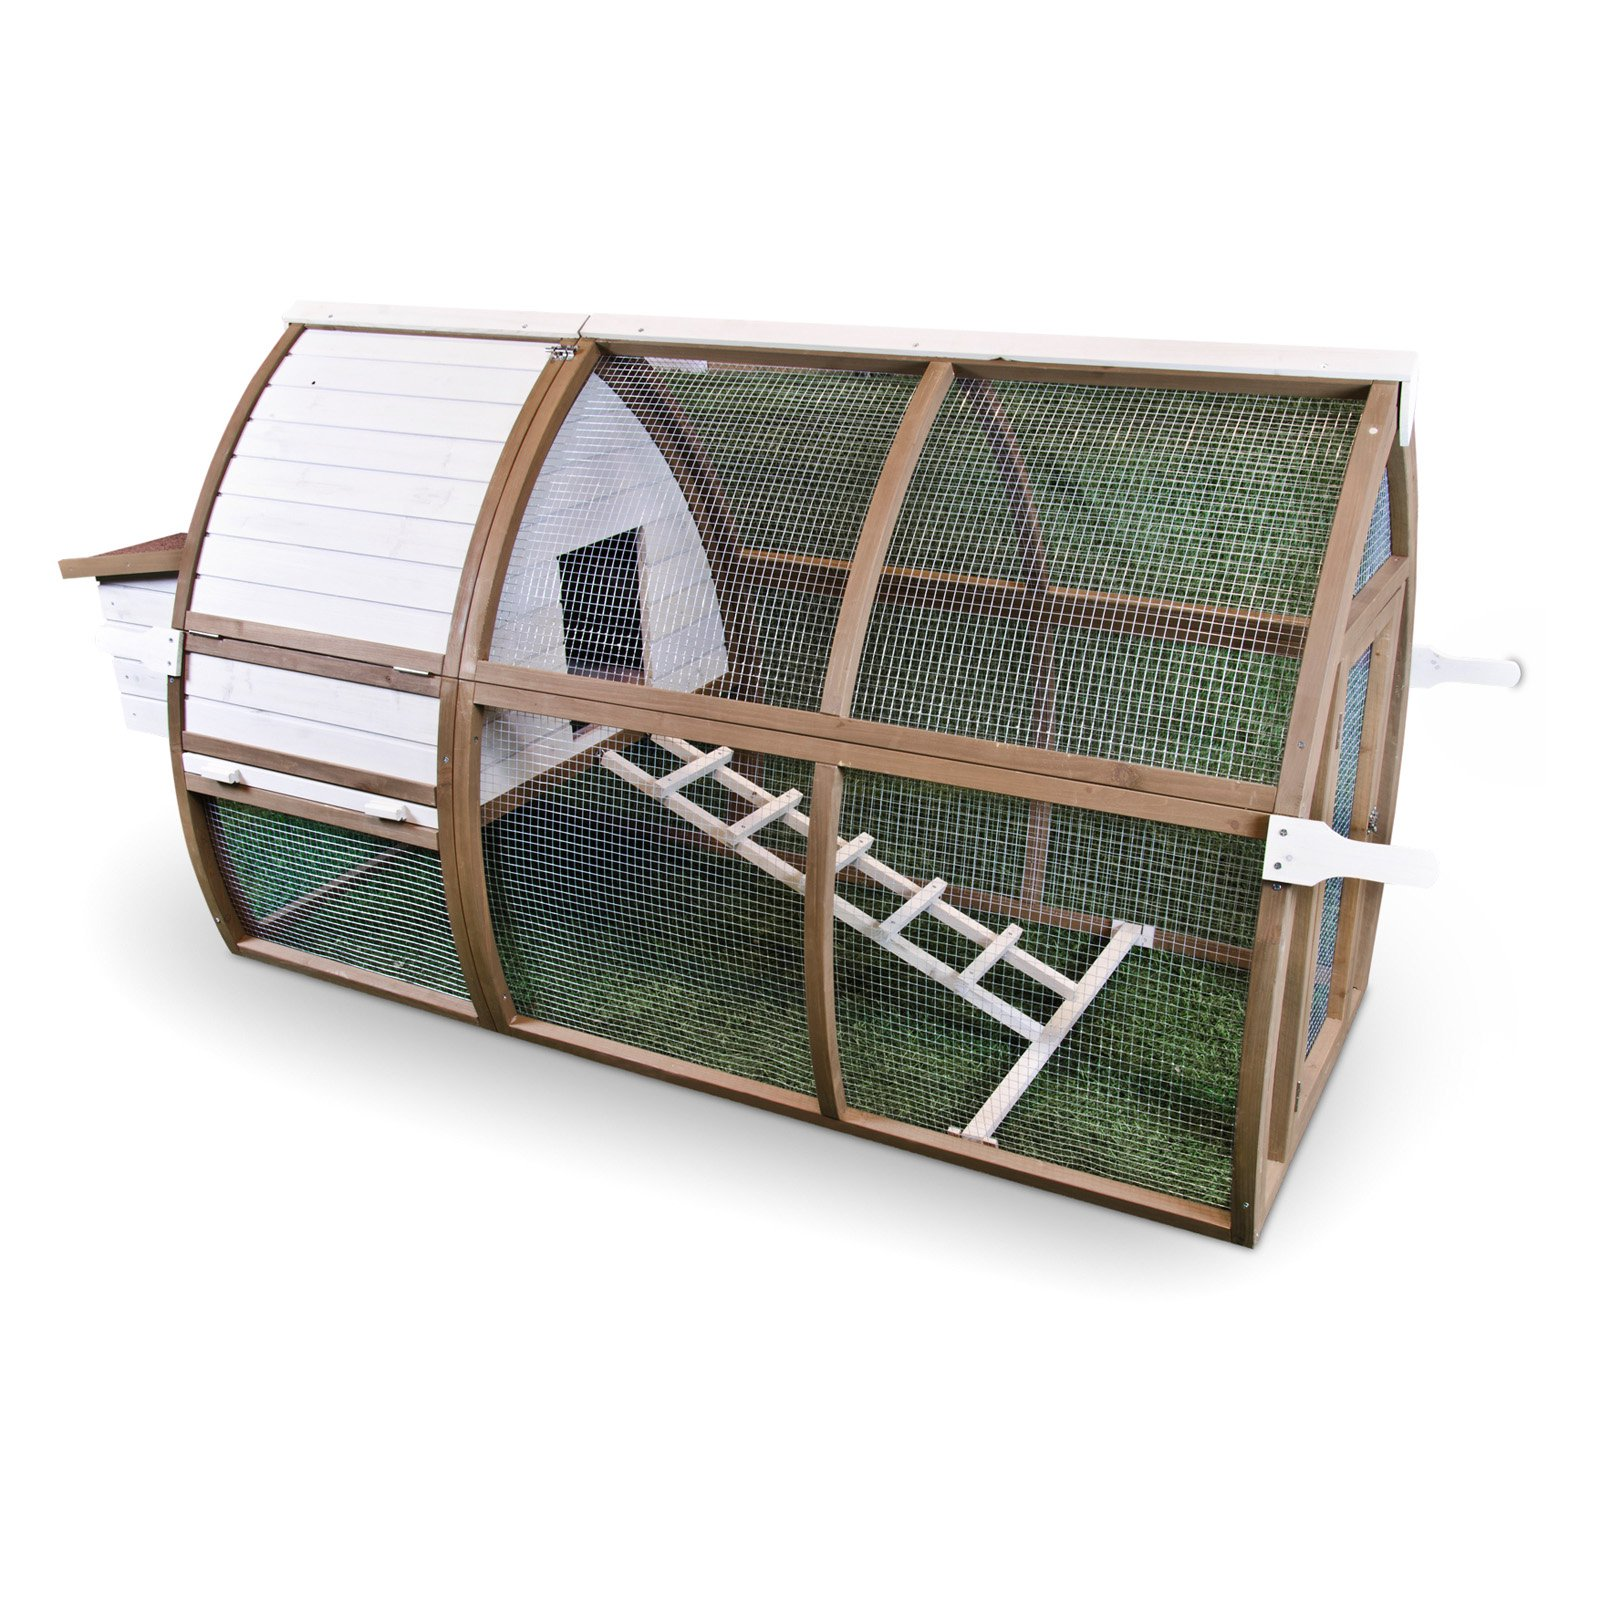 Ware Open Air Chicken Hutch